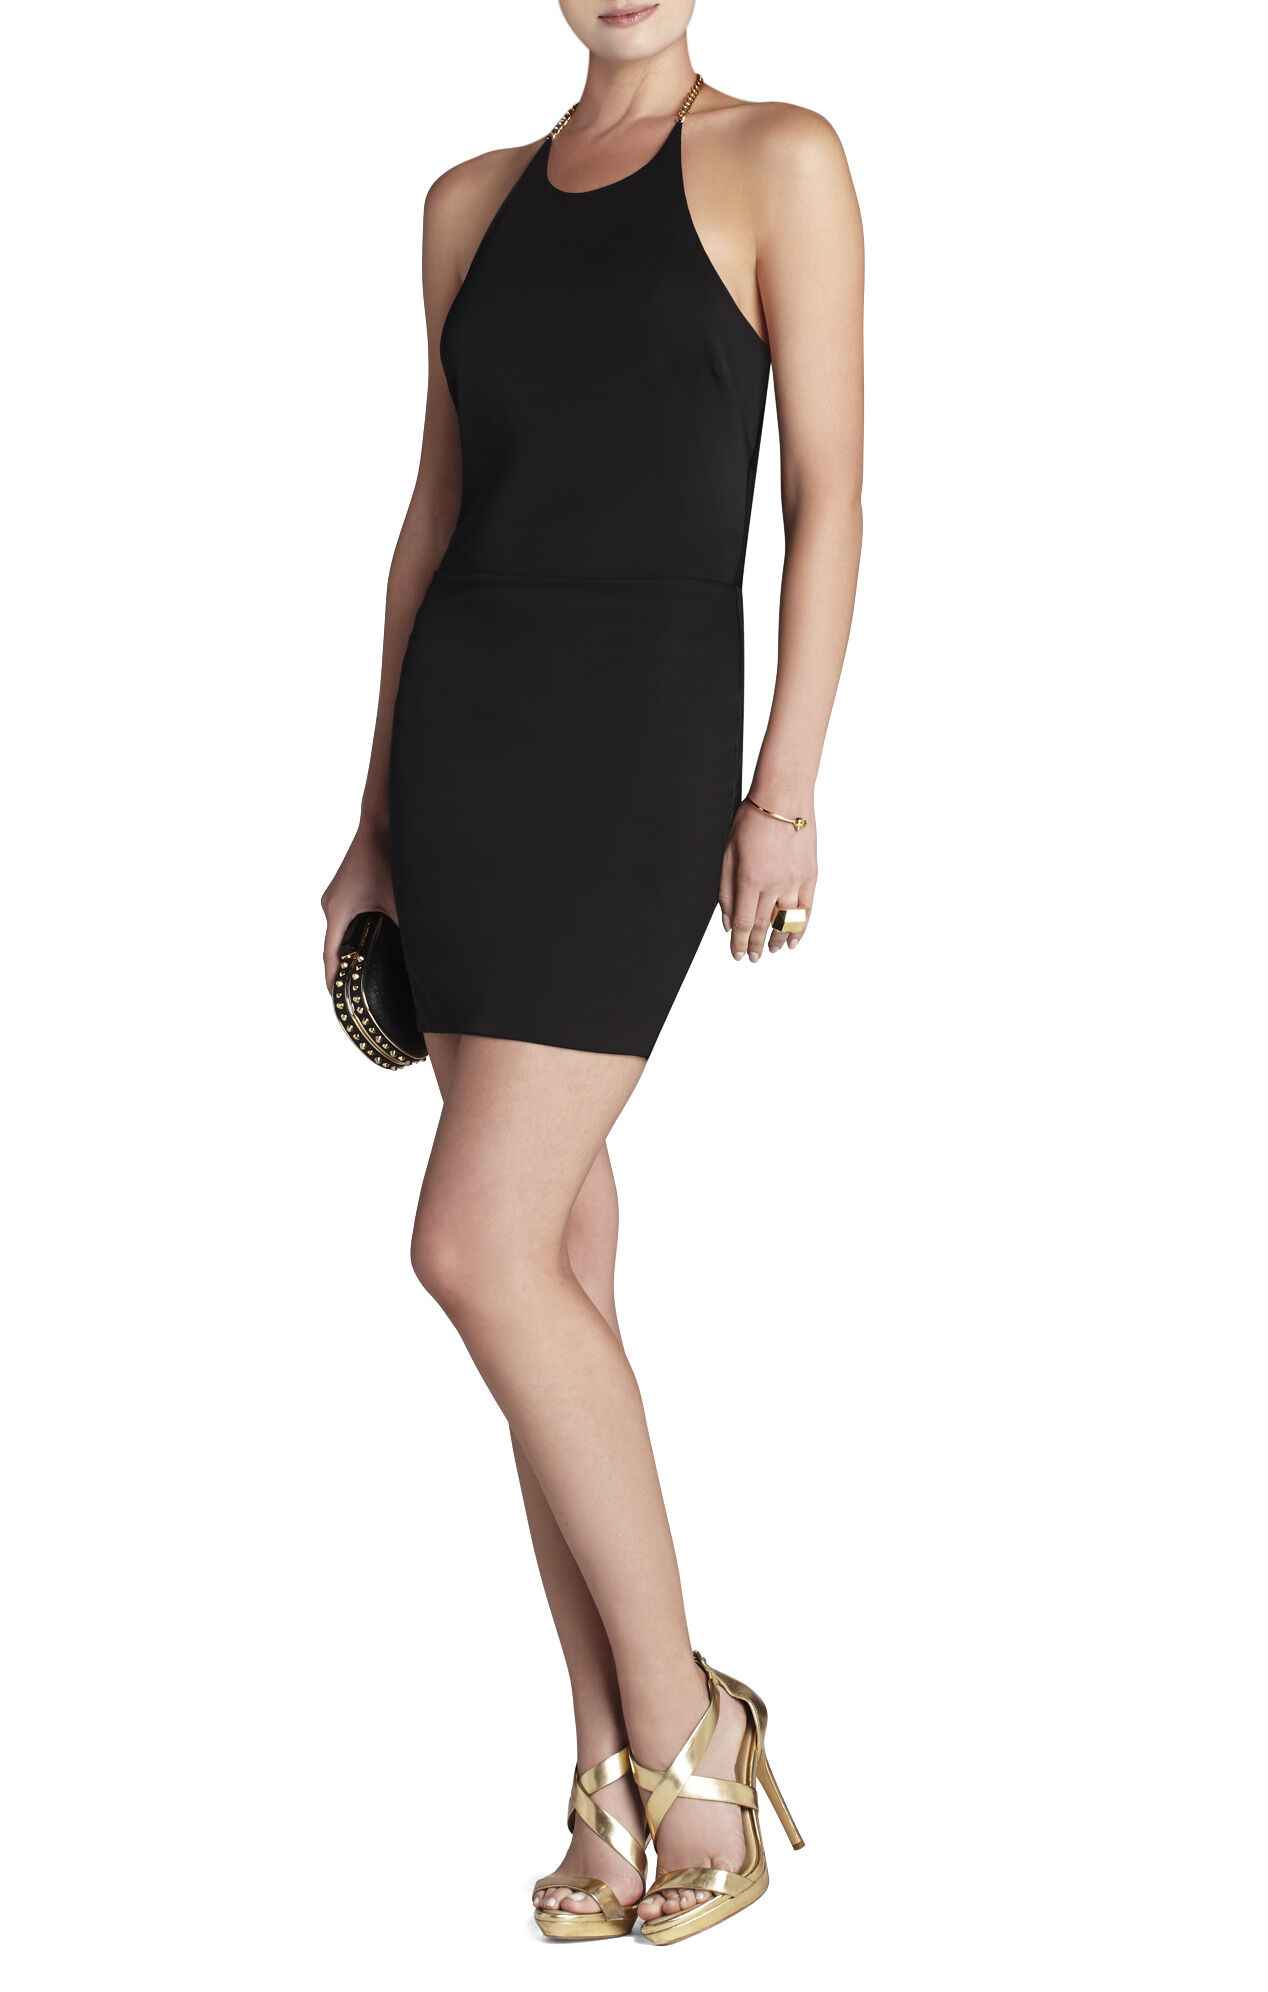 Leto Back-Chain Halter-Neck Dress